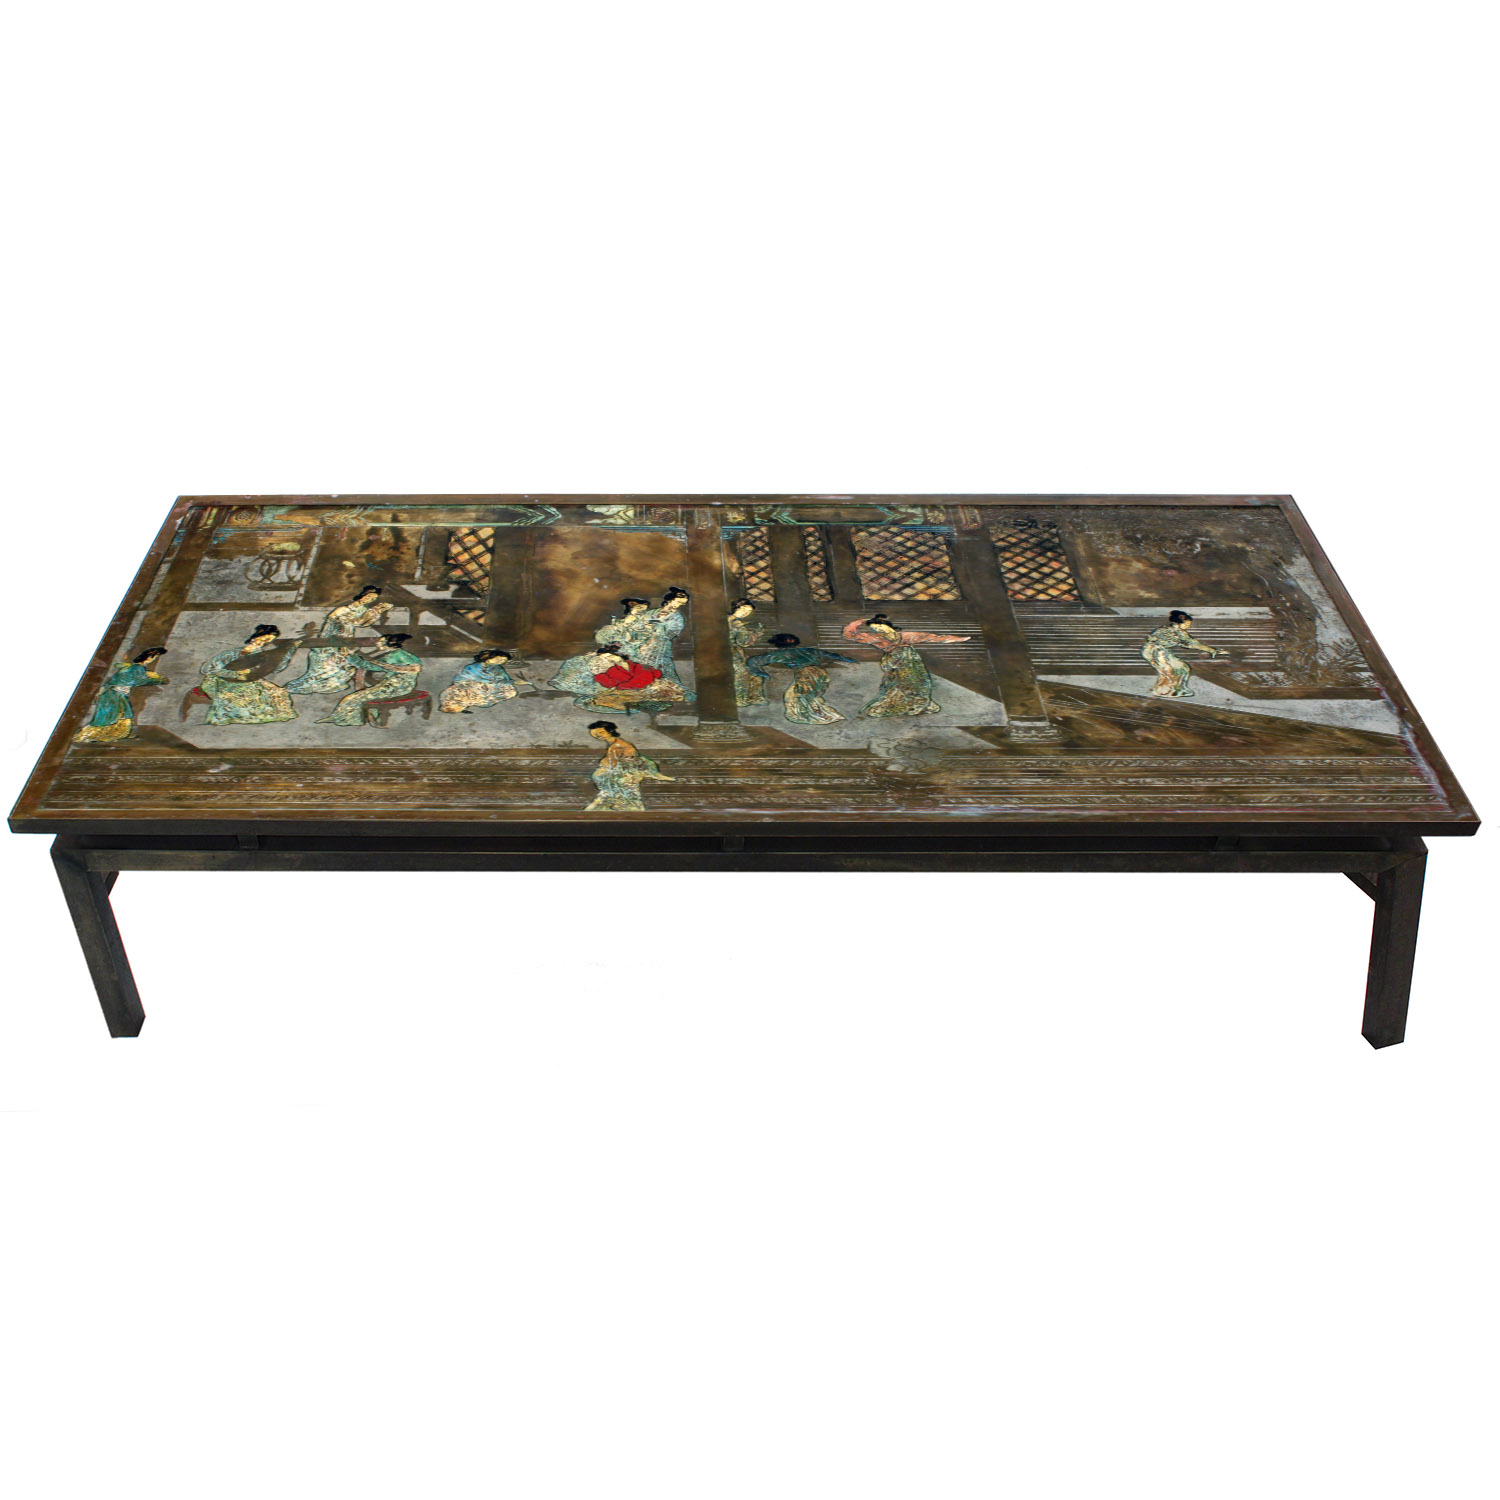 Laverne 180 Chin88 Ying coffeetable320 detail1 hires.jpg